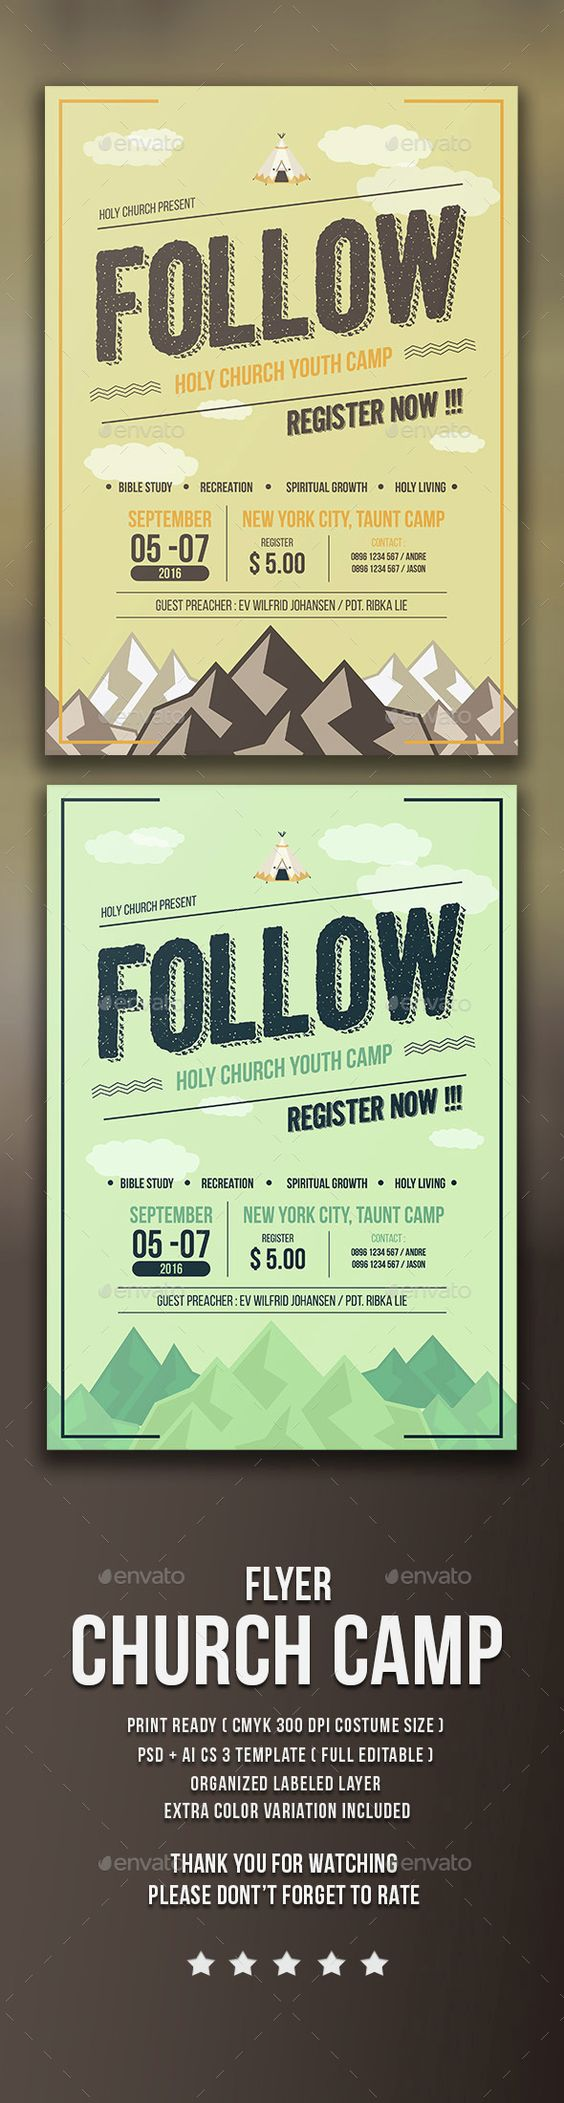 Flyer Design Ideas flyer design ideas makarizma Church Camp Flyer